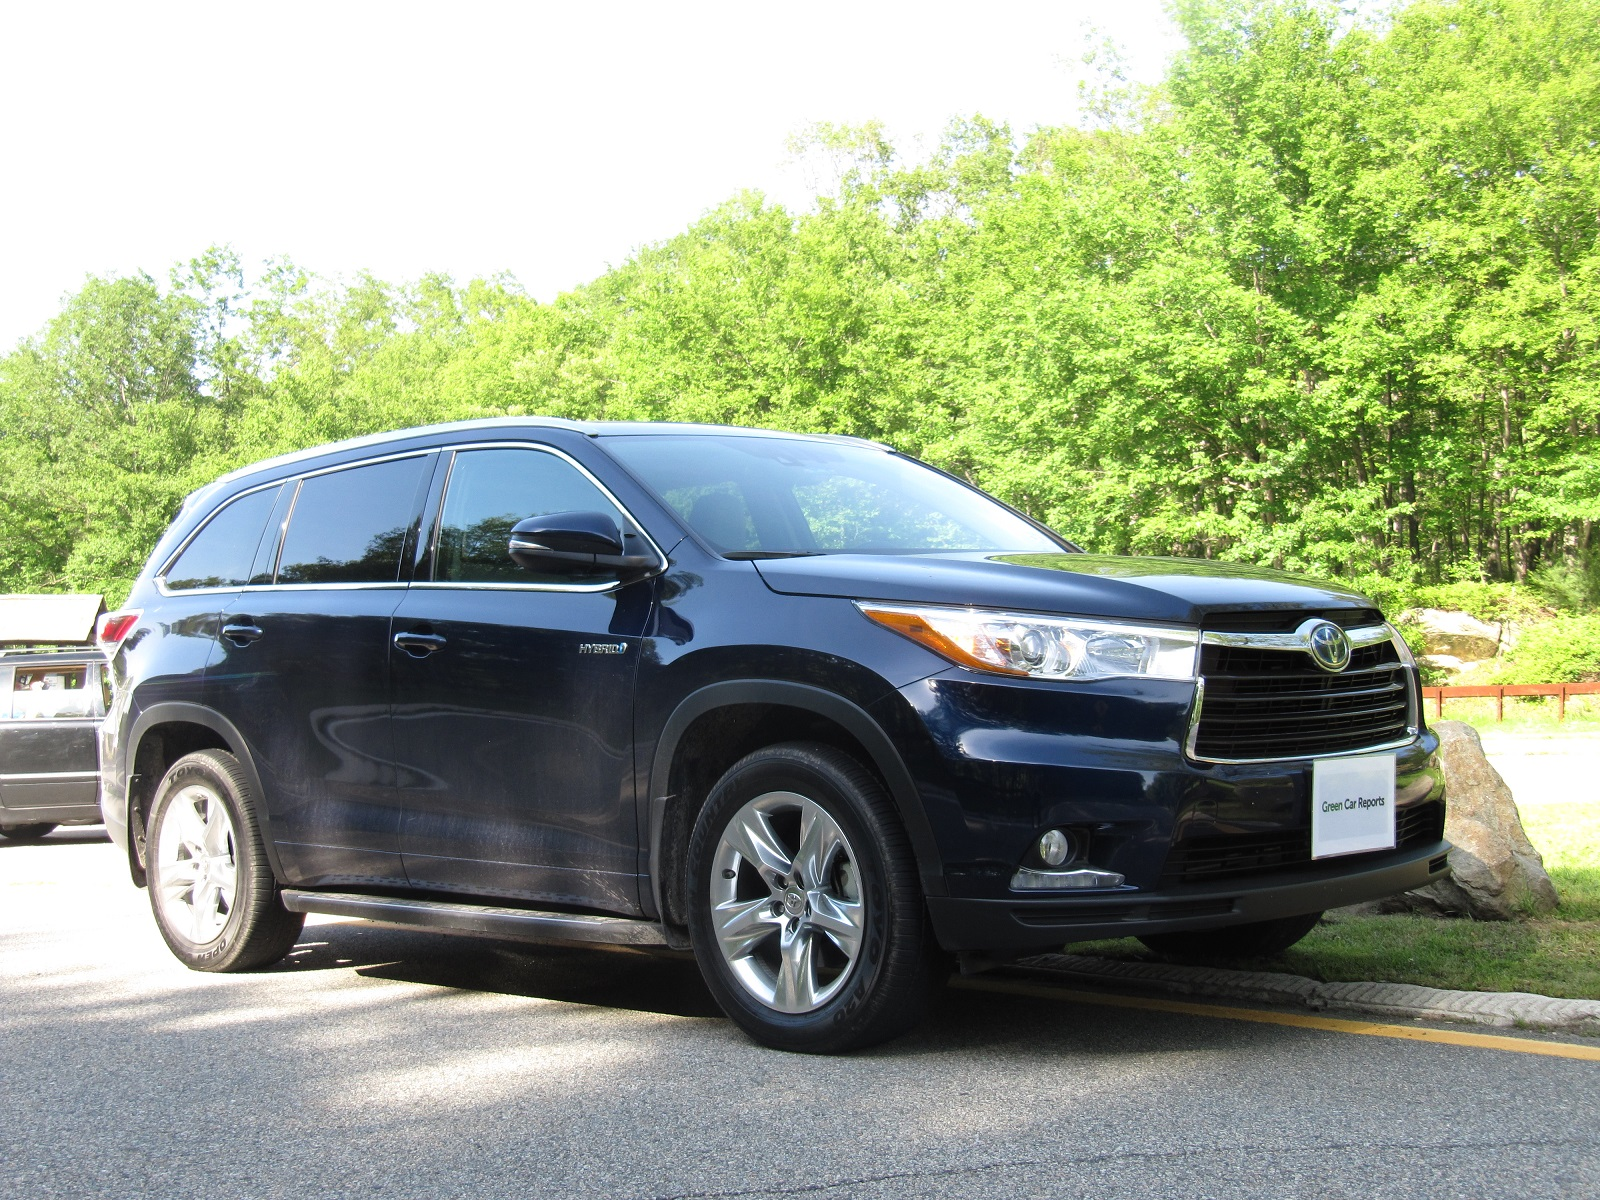 2014 Toyota Highlander Hybrid: Gas Mileage Review